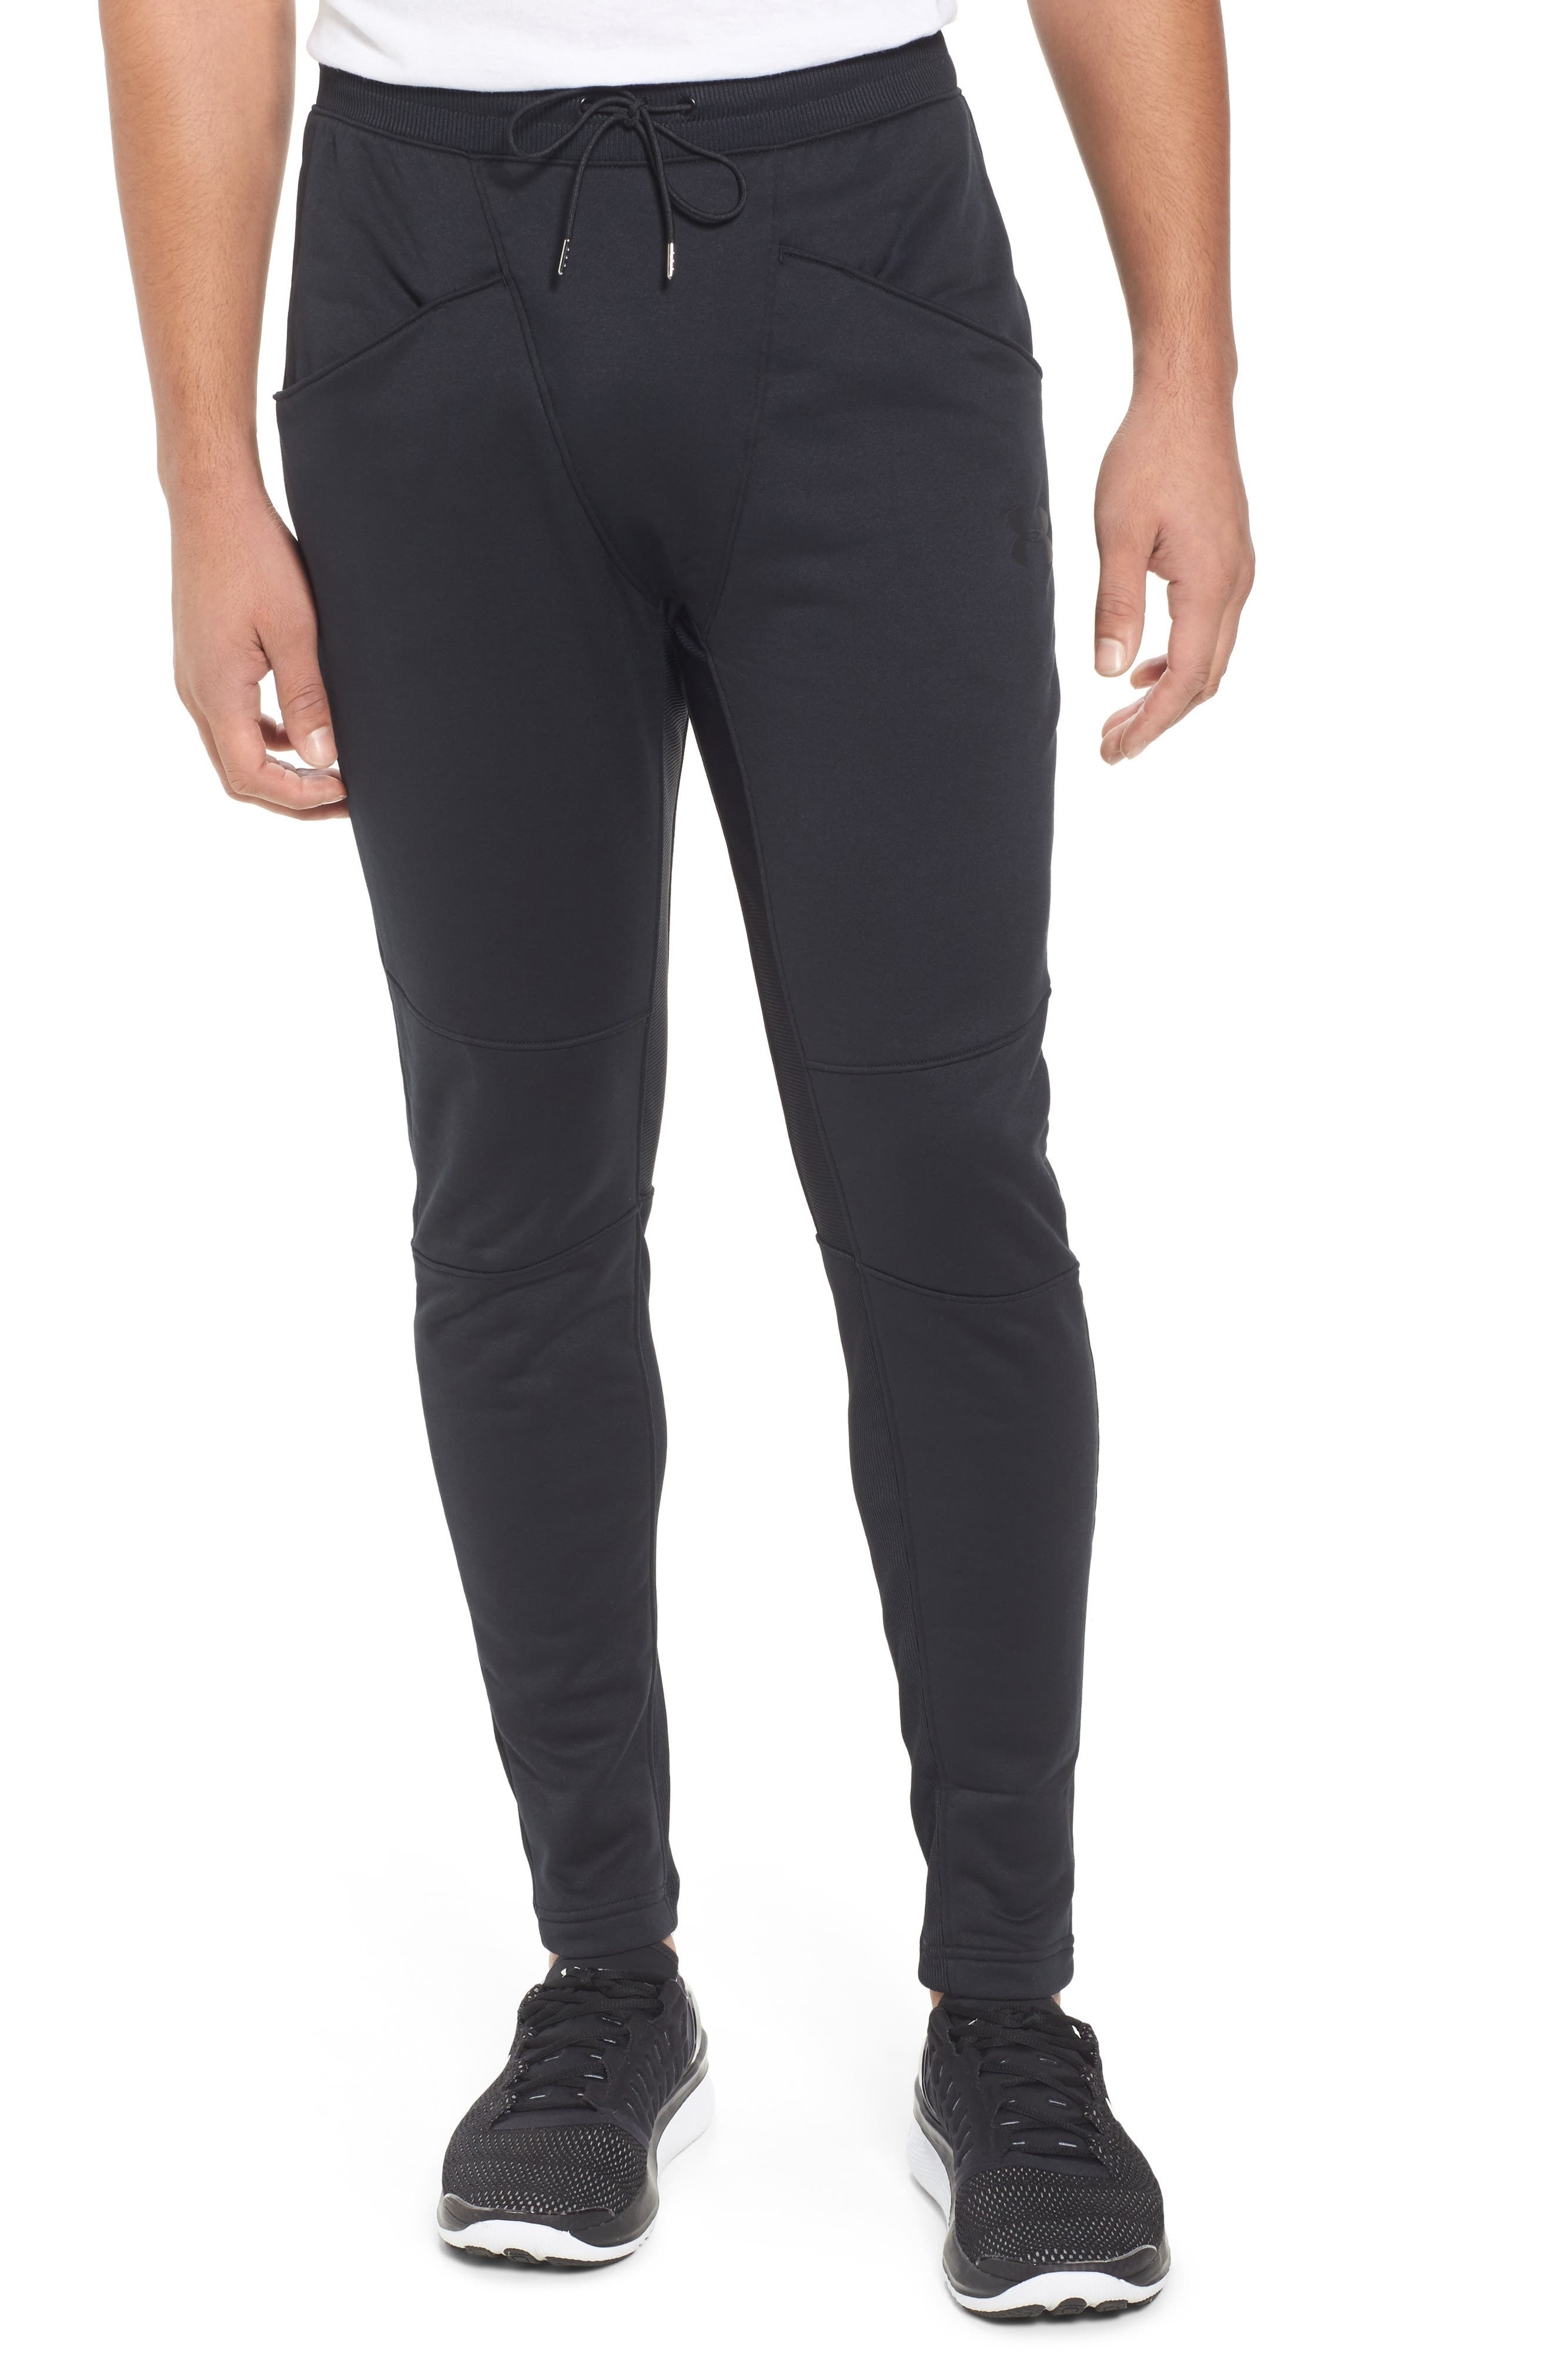 Alternate Image 1 Selected - Under Armour Courtside Training Pants